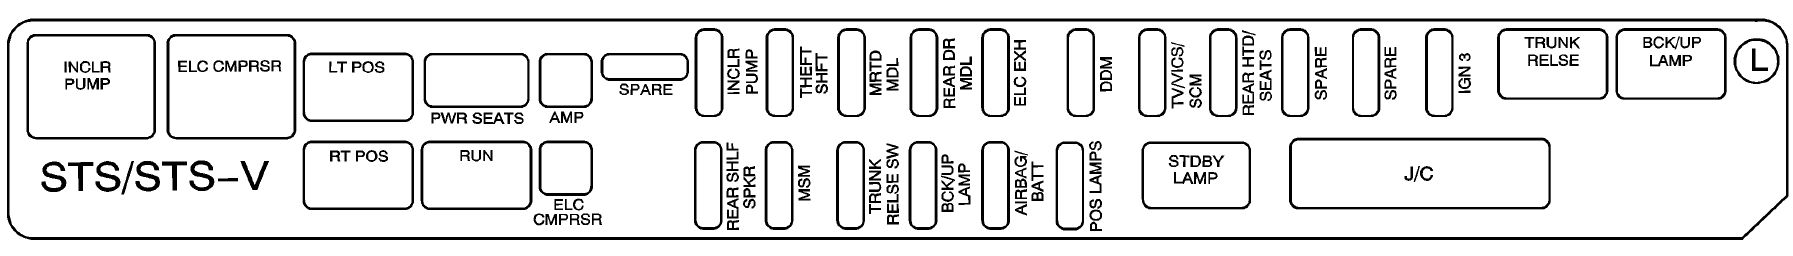 cadillac sts 2010 2011 fuse box diagram carknowledge. Black Bedroom Furniture Sets. Home Design Ideas